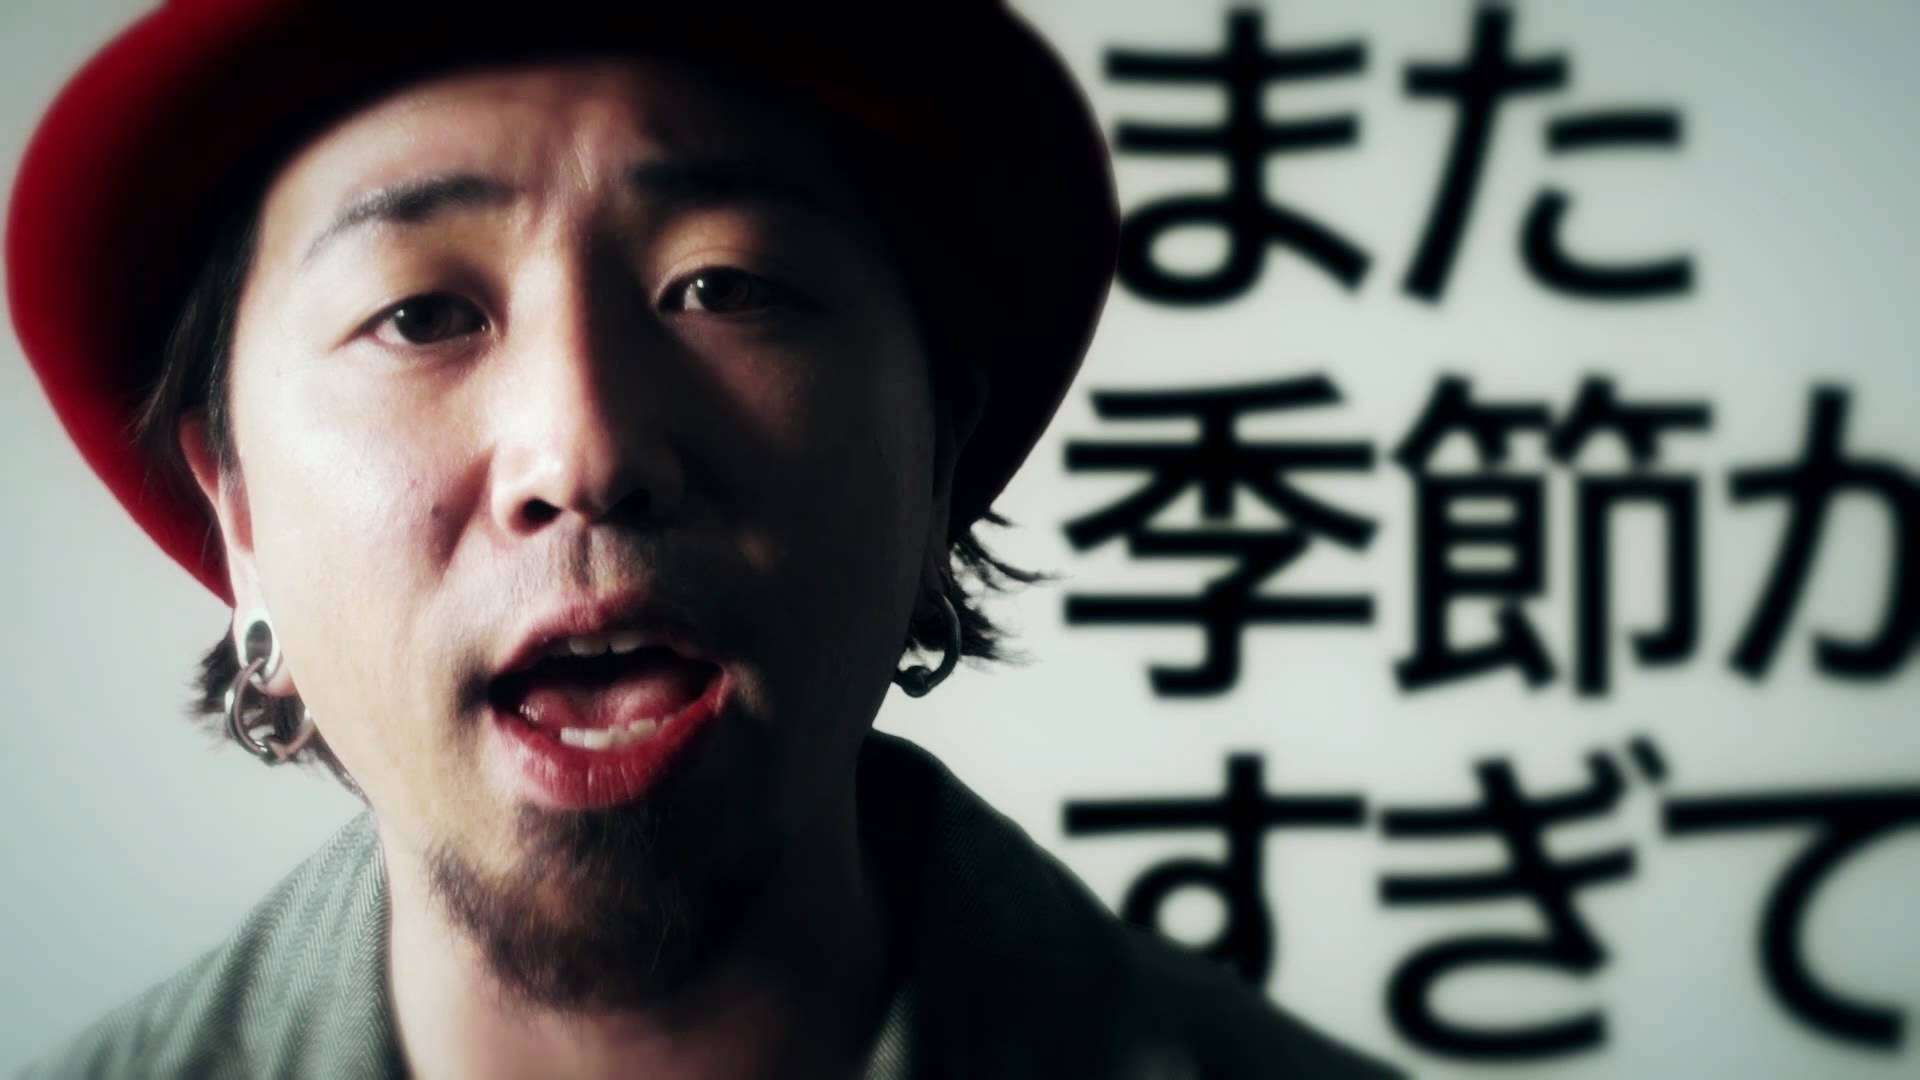 ET-KING - 男は気持ちを伝えたい(Short Ver.) - YouTube